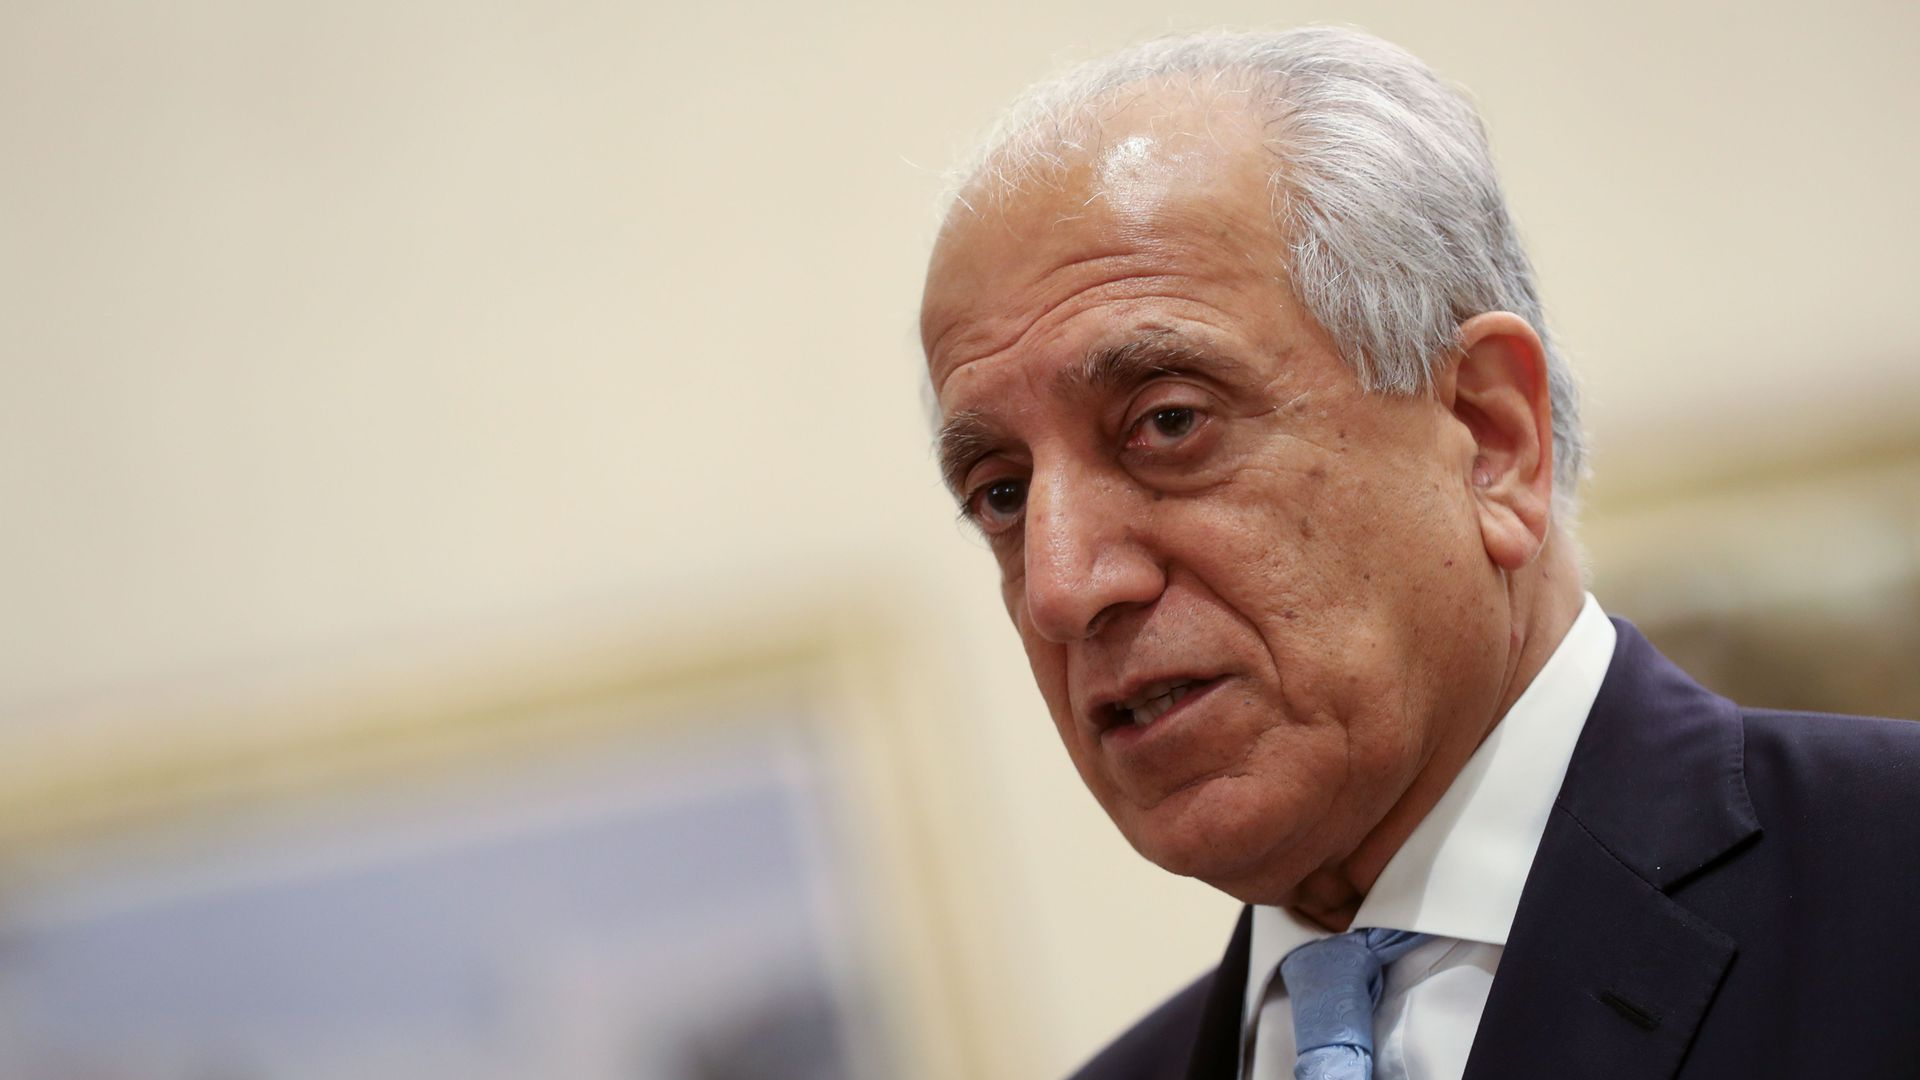 In this image, Khalilzad stands in a suit and tie